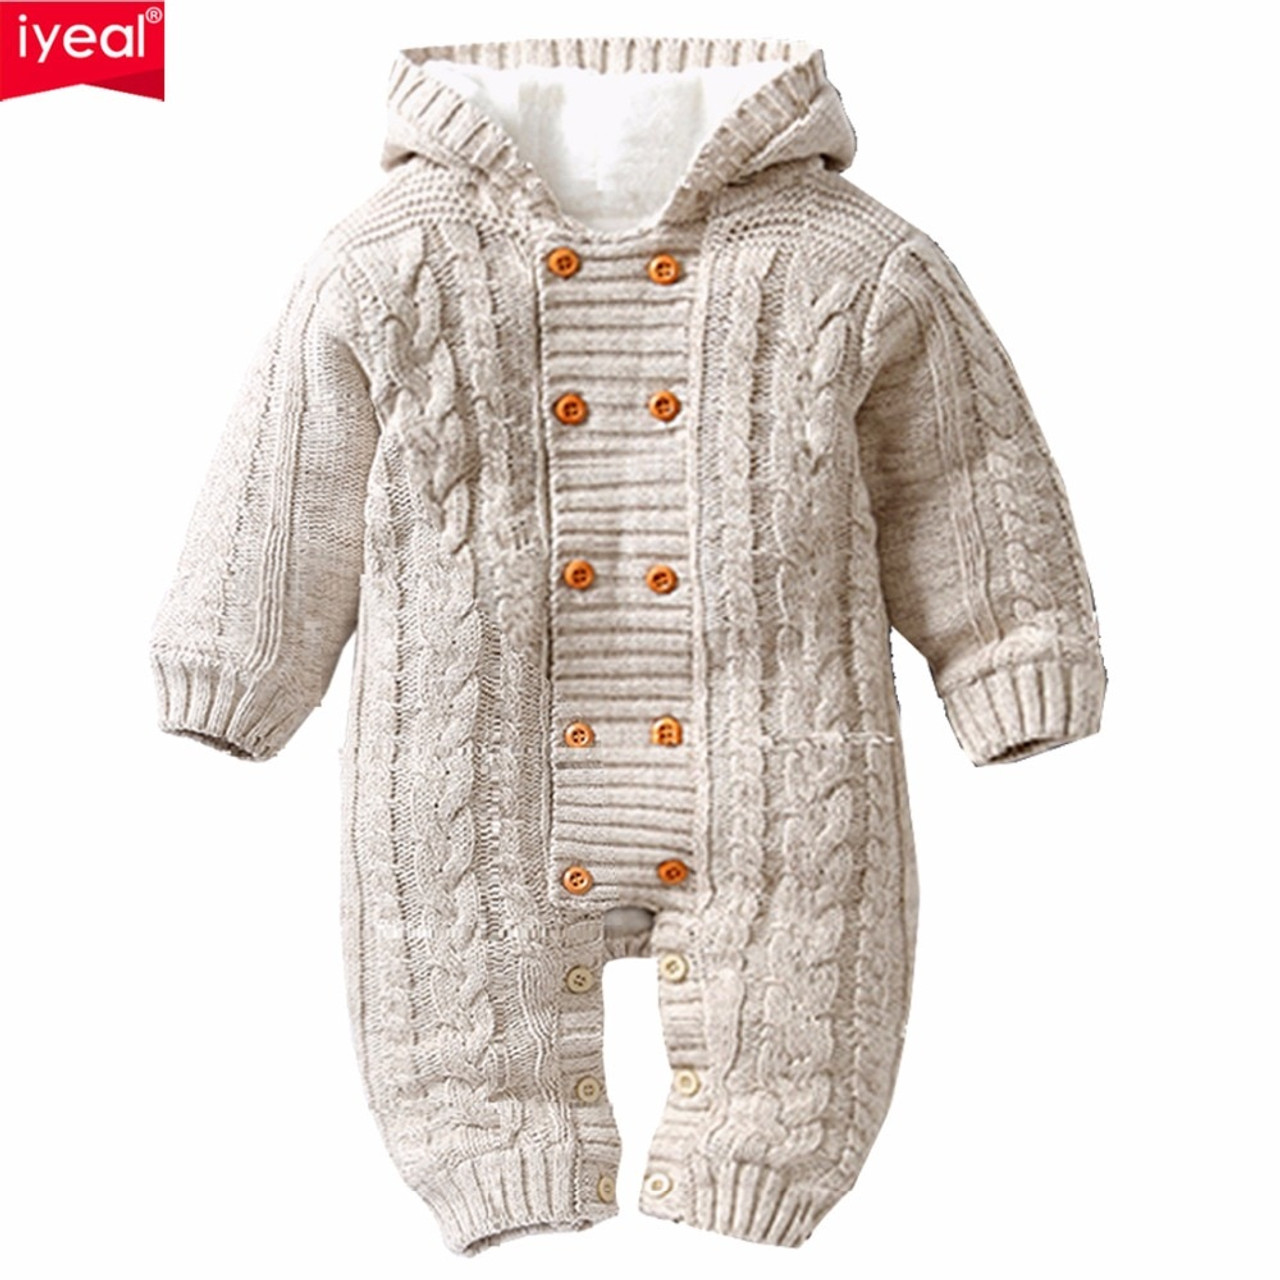 4e1064eccece IYEAL Thick Warm Infant Baby Rompers Winter Clothes Newborn Baby Boy ...